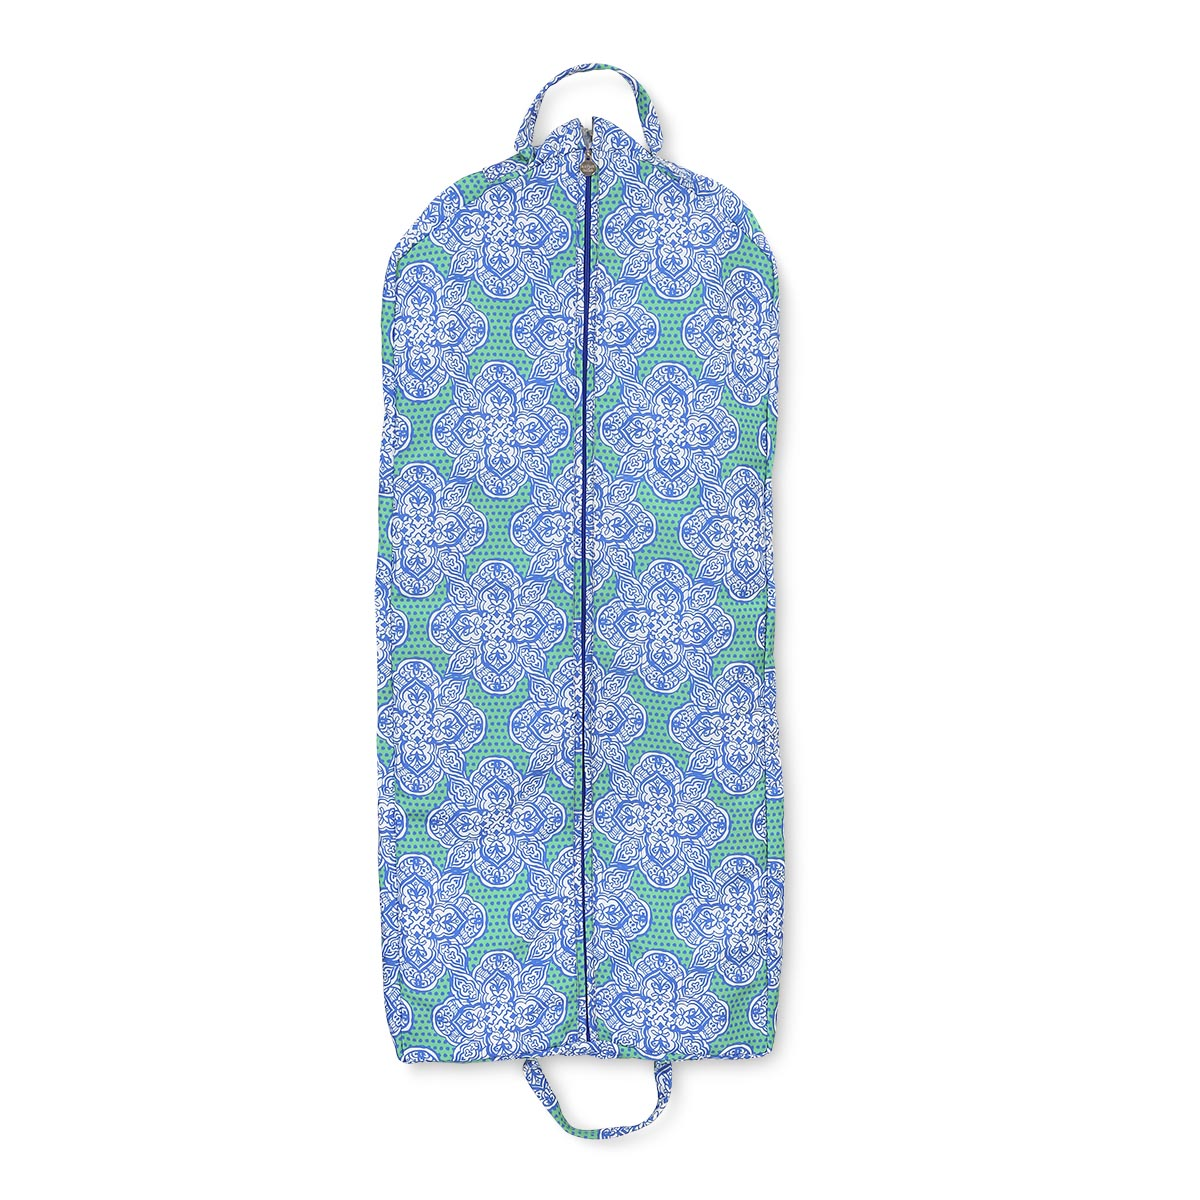 mai tai green/royal garment bag large